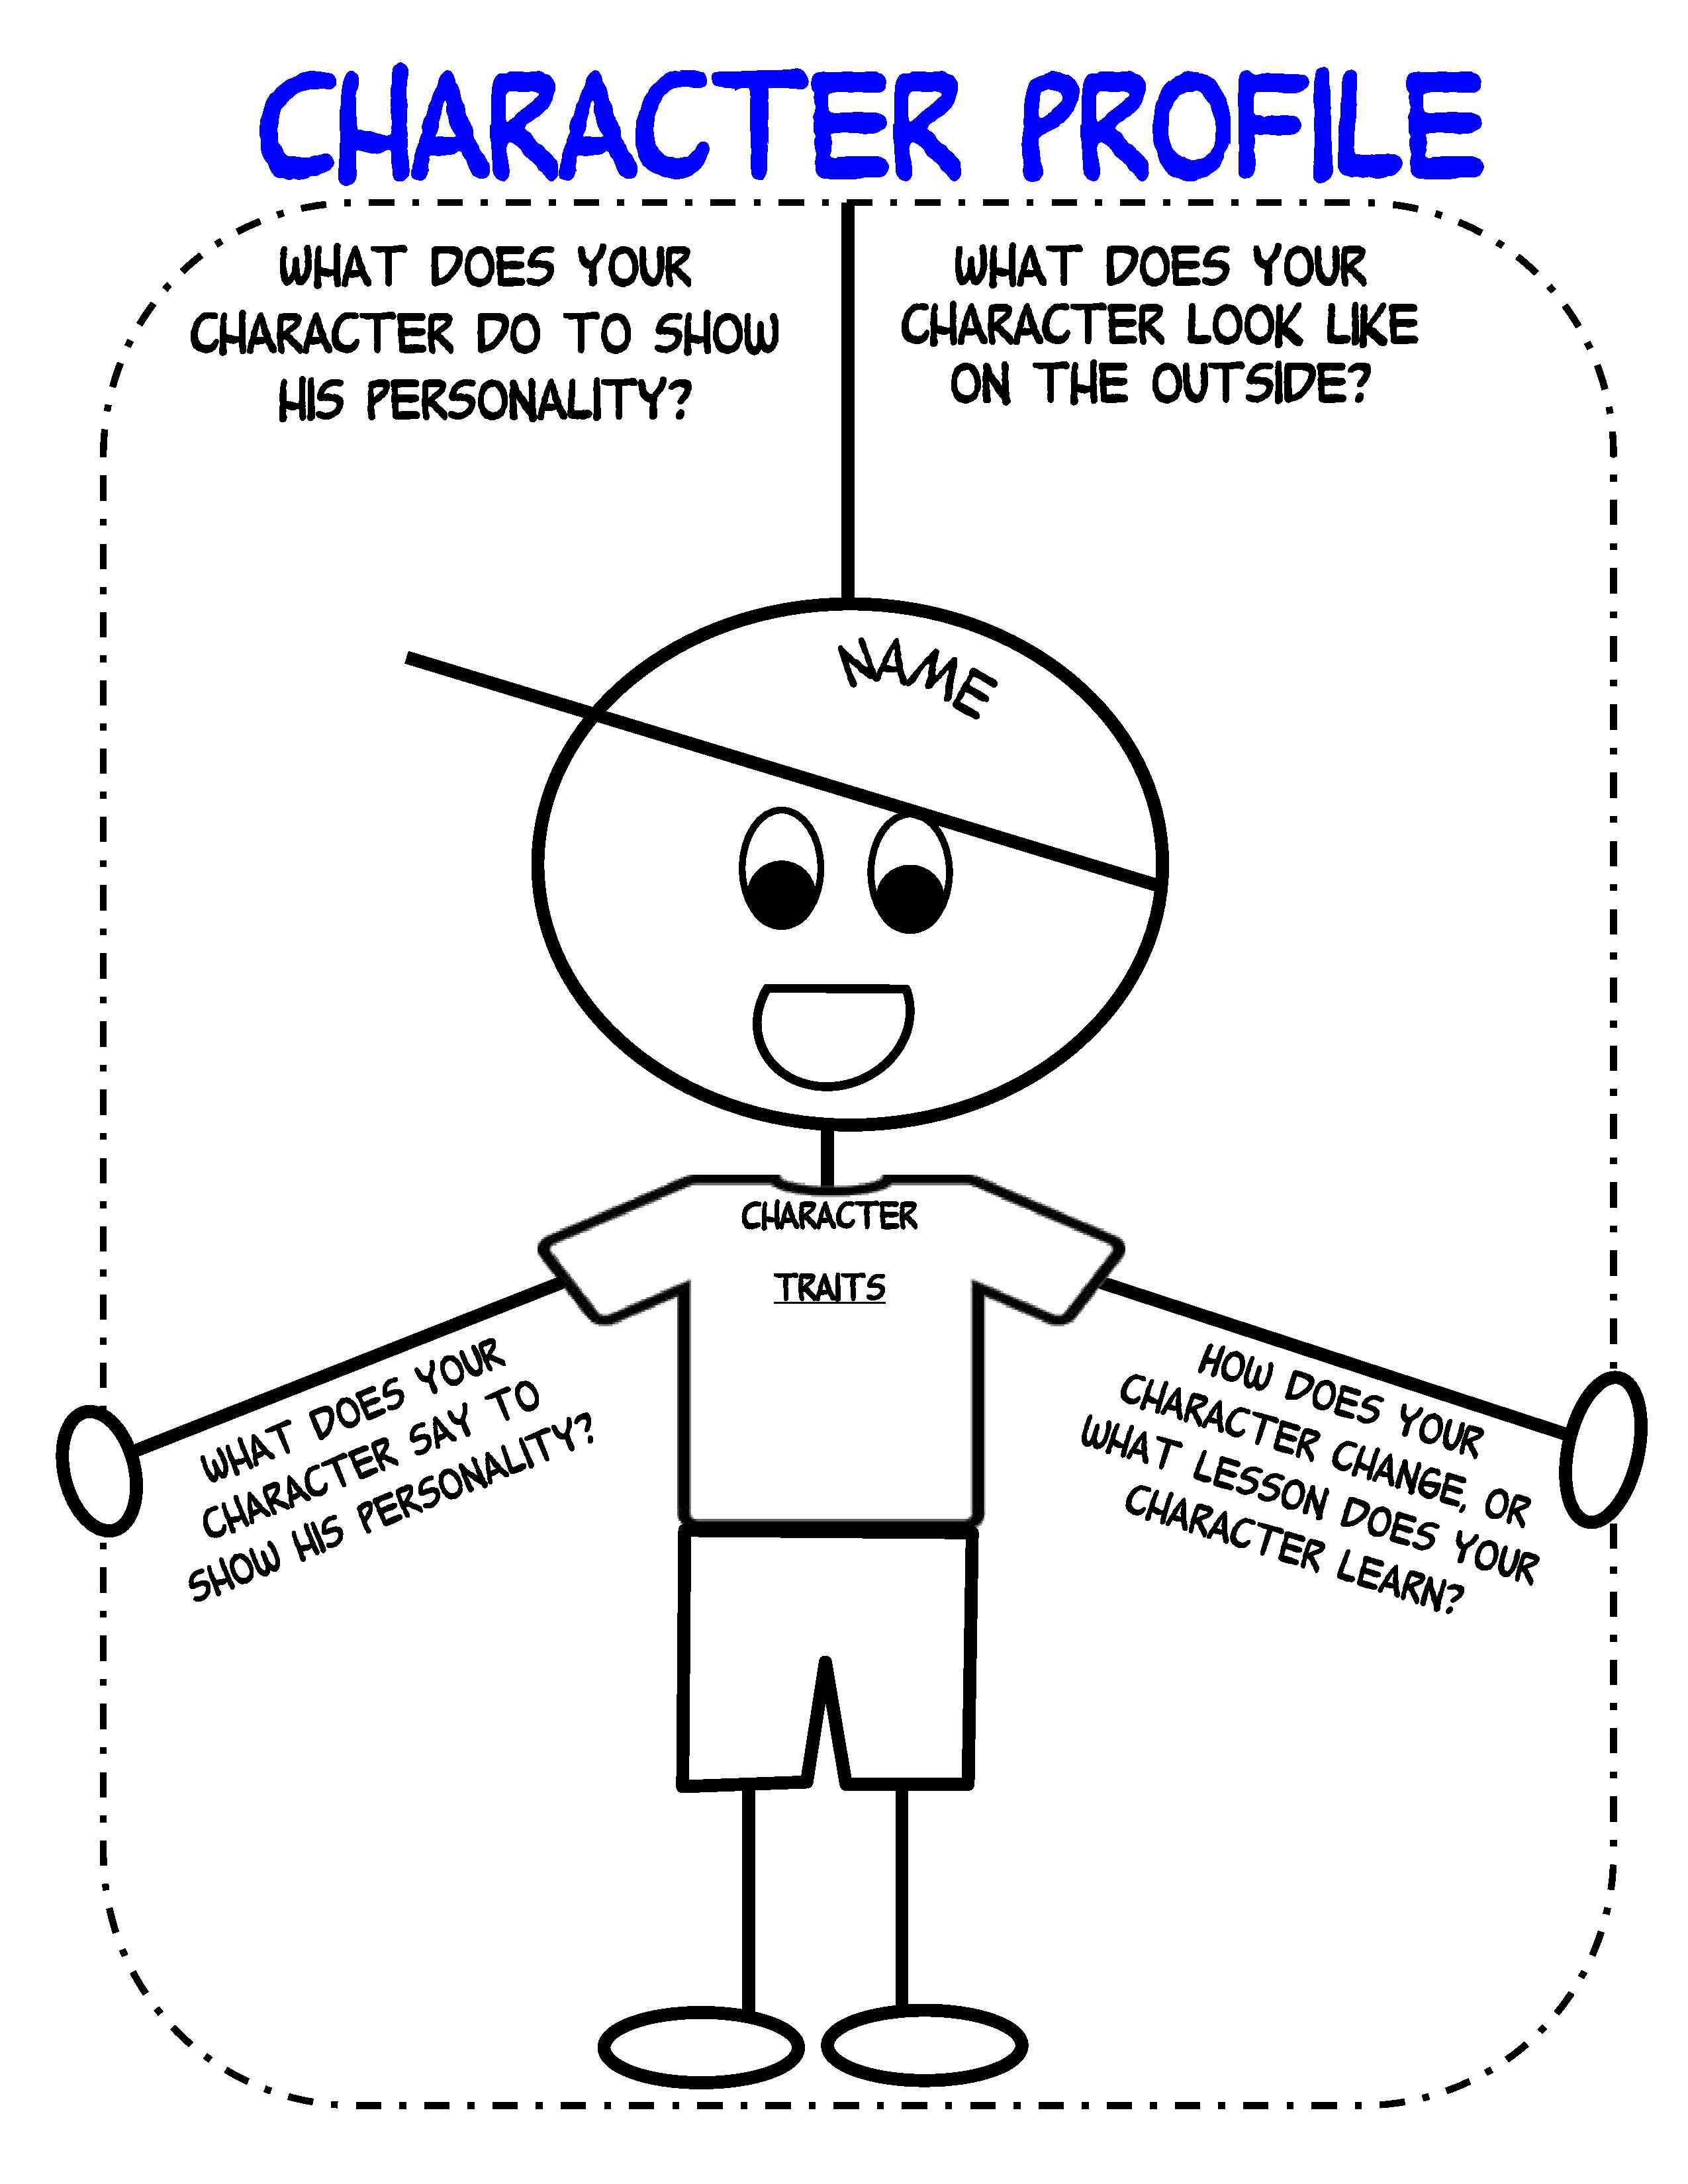 Characterization Worksheet Middle School: characterization worksheet   kutshet com,